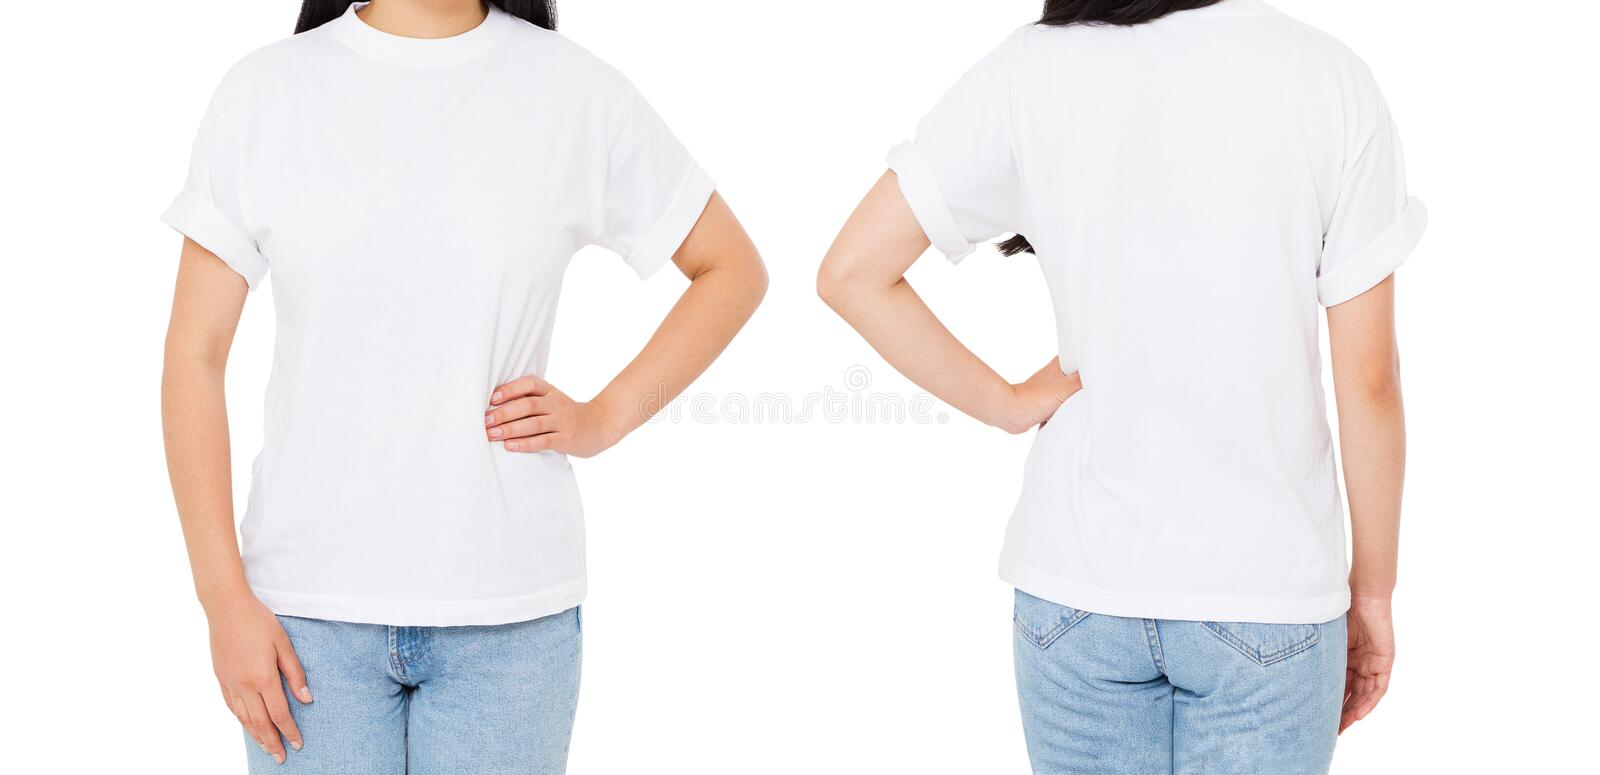 Front back views woman in t shirt isolated on white background,Mock up for design. Copy space. Template. Blank.  royalty free stock photo